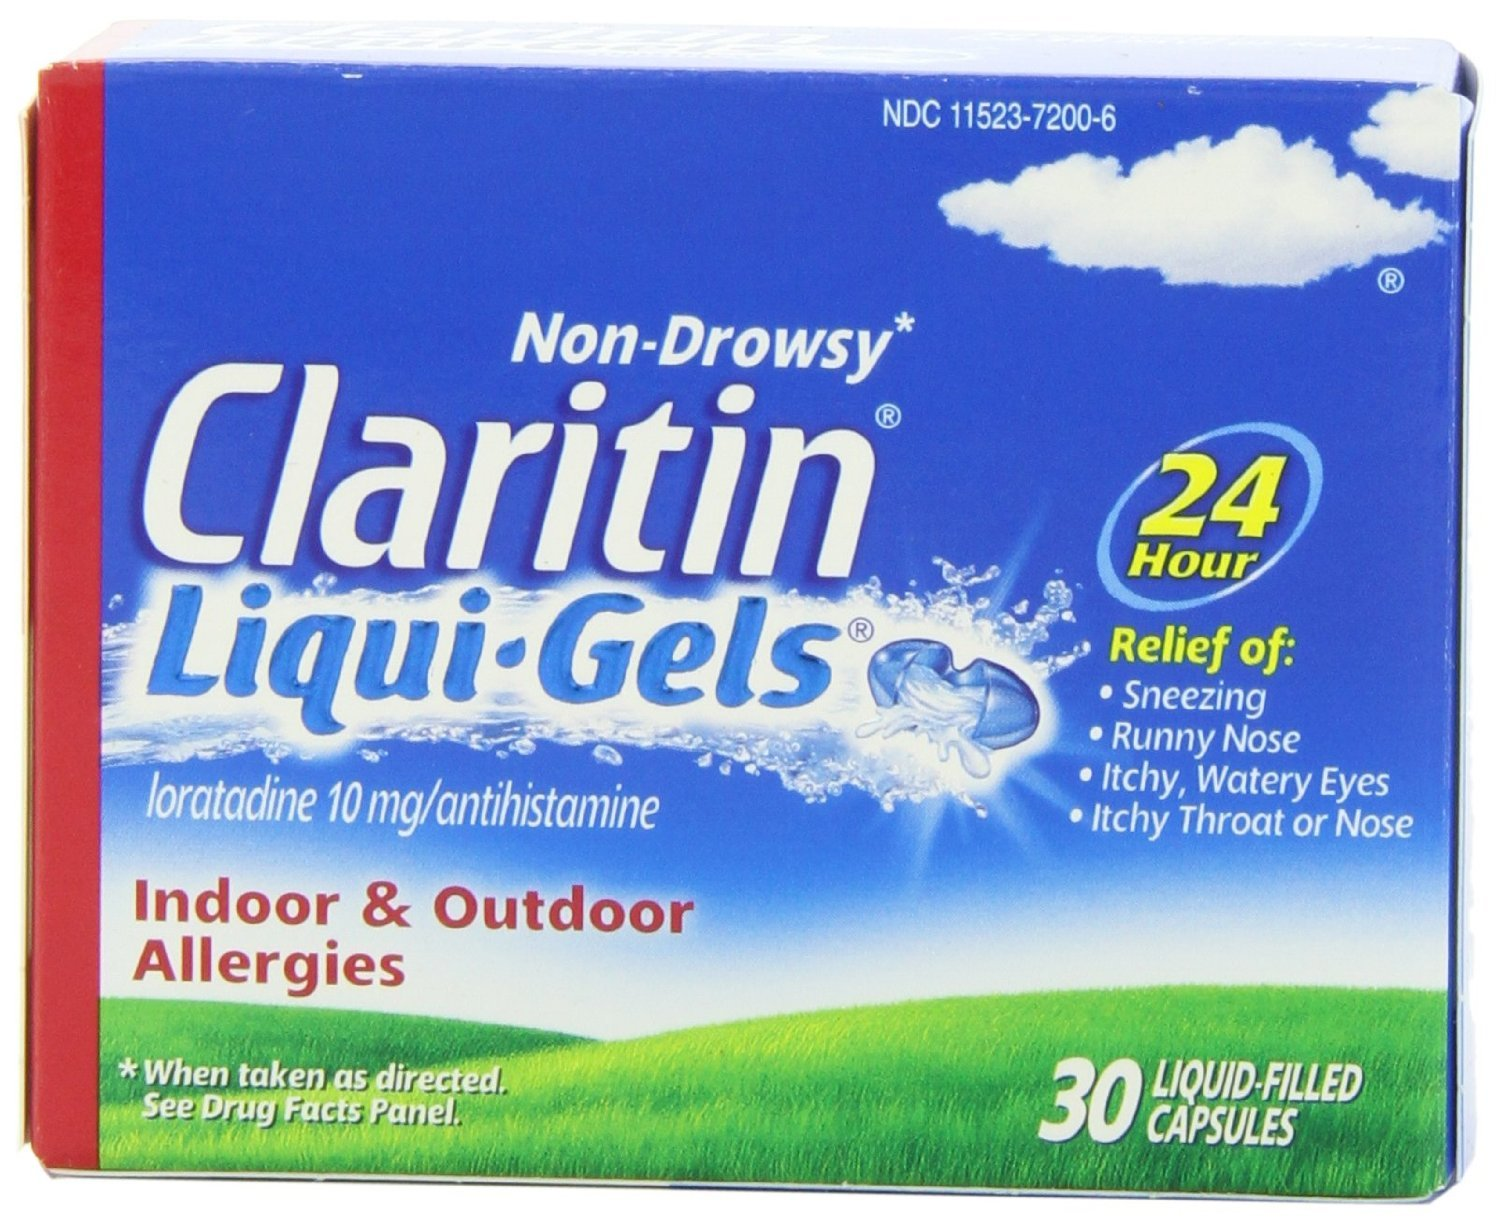 Claritin 24 Hour Allergy Liqui-Gels 30 CT (PACK OF 3) by